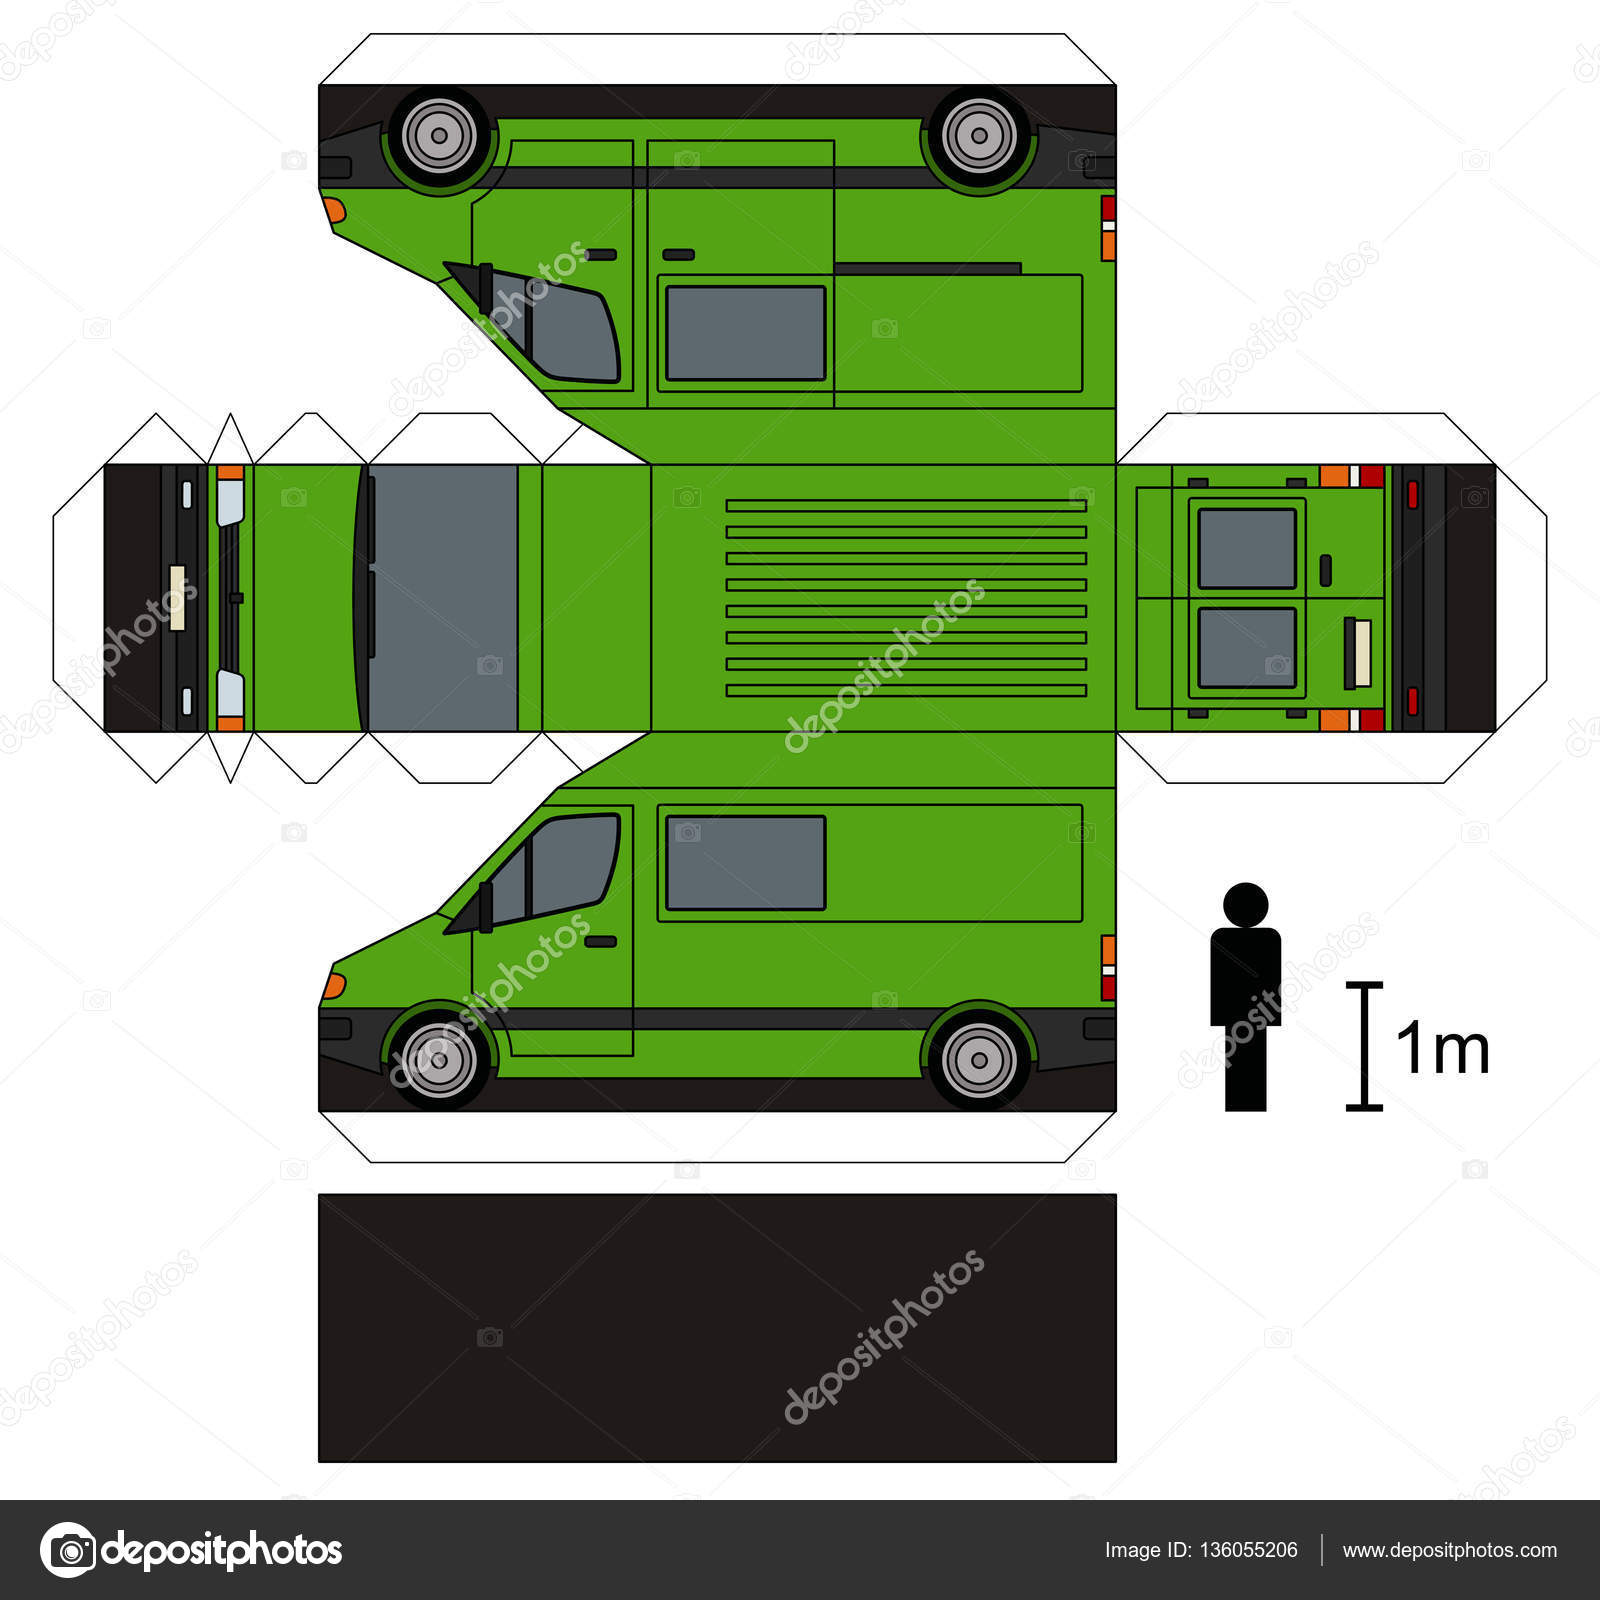 maquette en papier d une camionnette verte image vectorielle martin2015 136055206. Black Bedroom Furniture Sets. Home Design Ideas